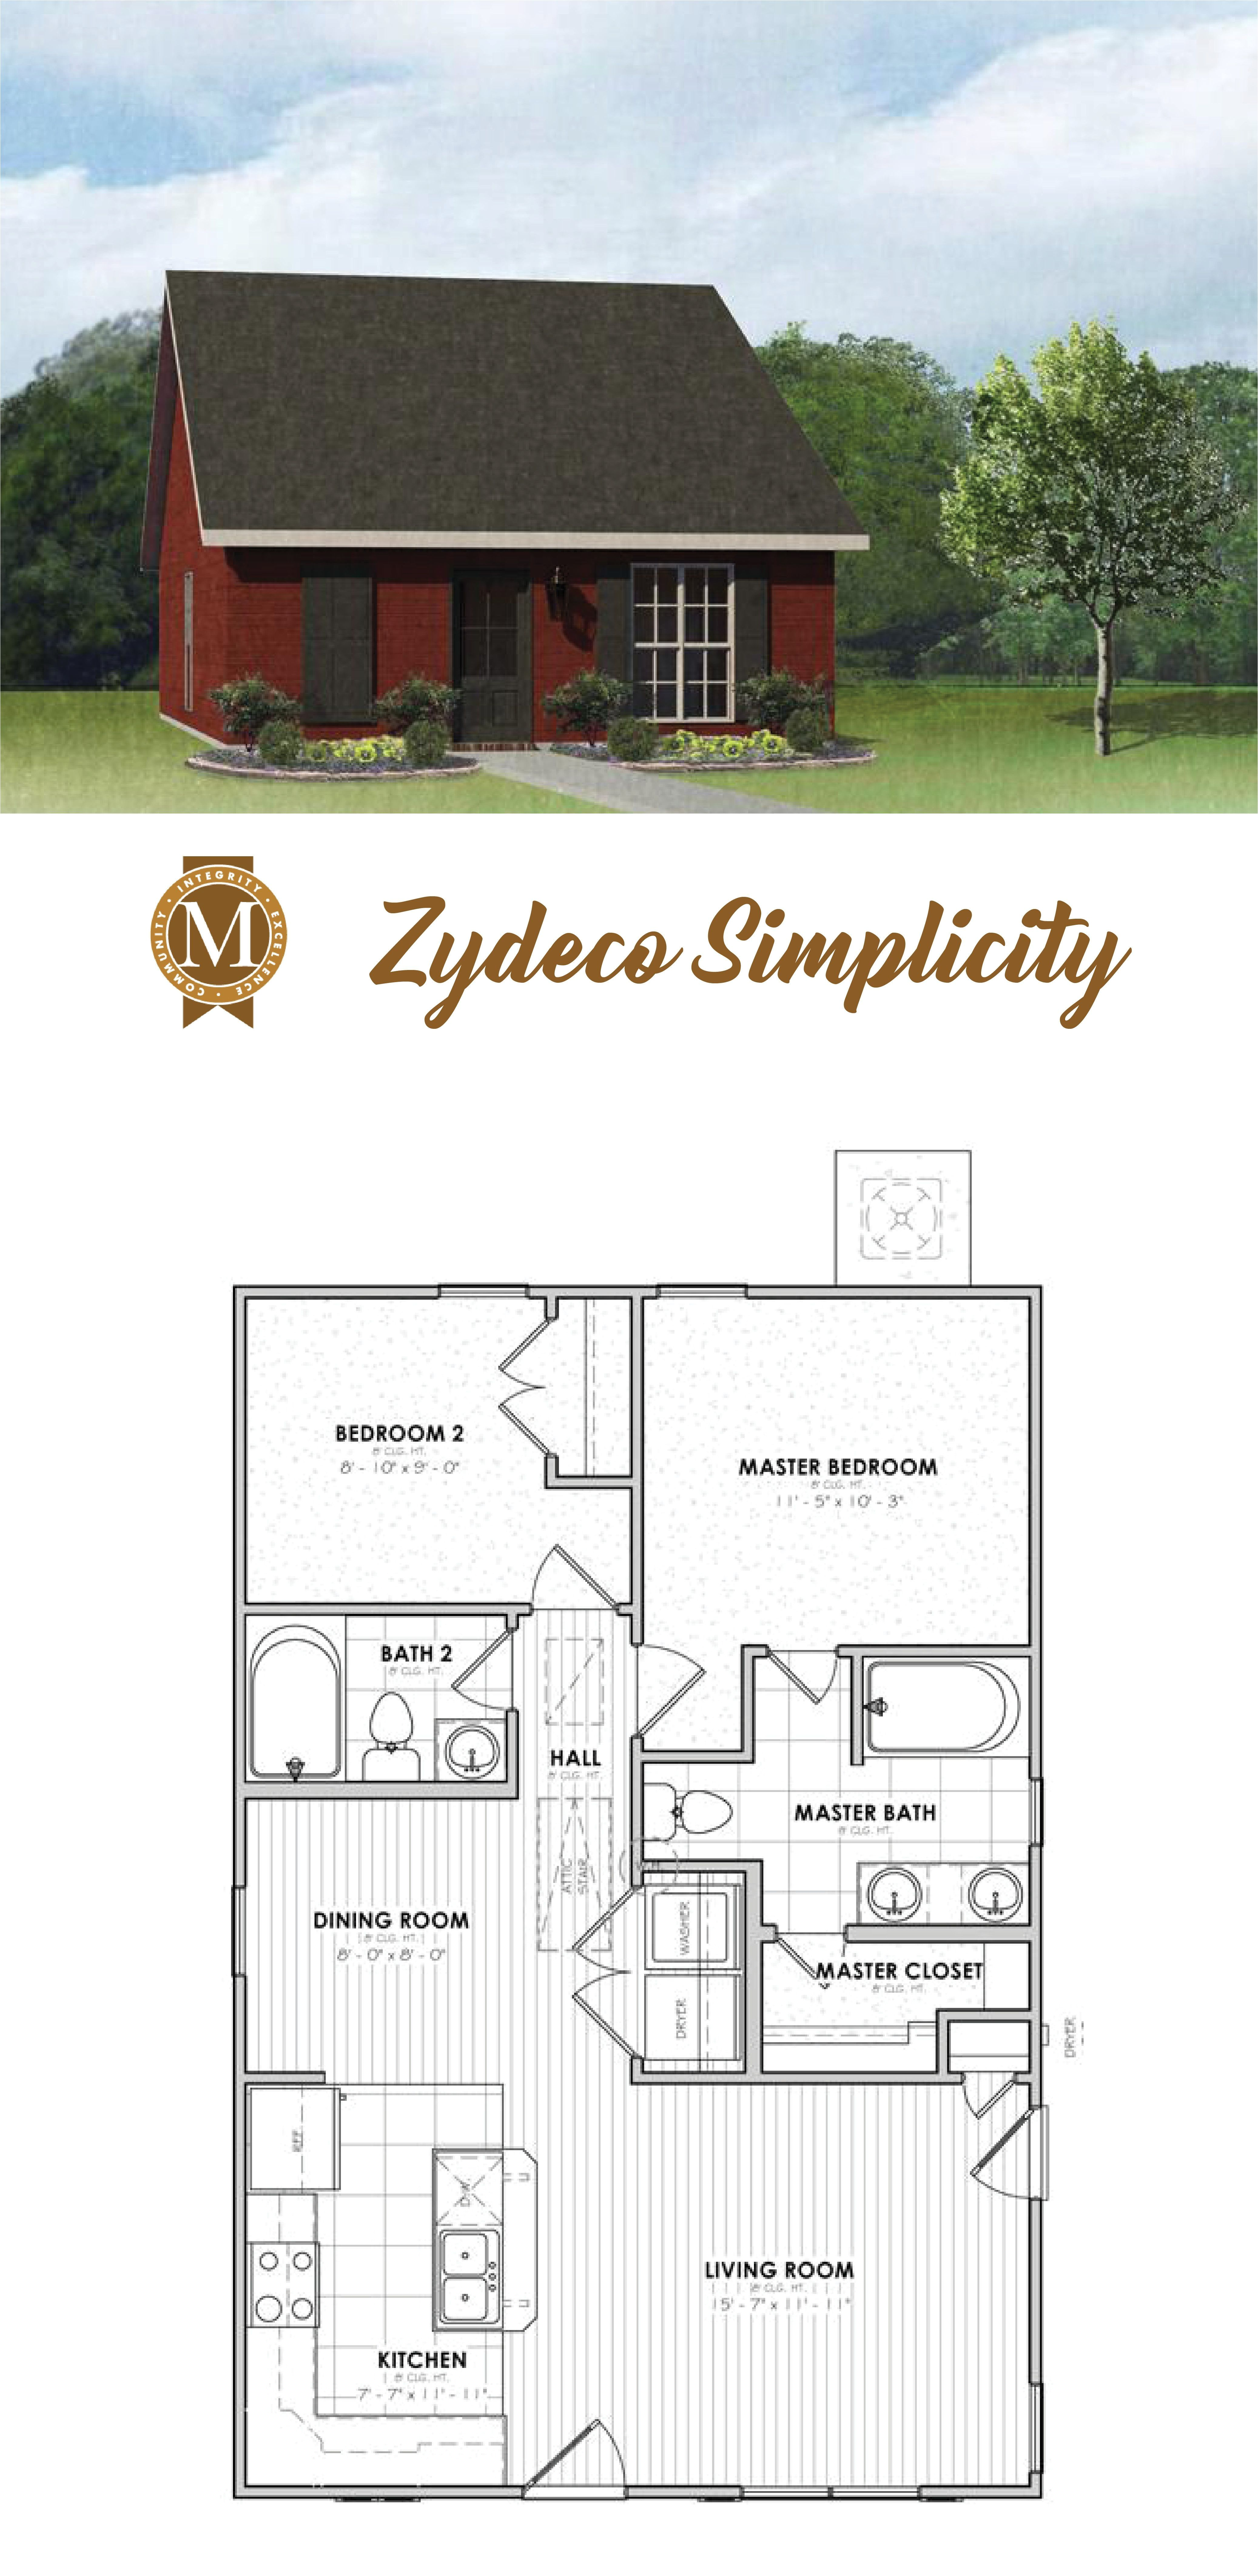 2 Bedroom 2 Bath Apartments In Baton Rouge House Plans Cottage House Plans Tiny House Plans